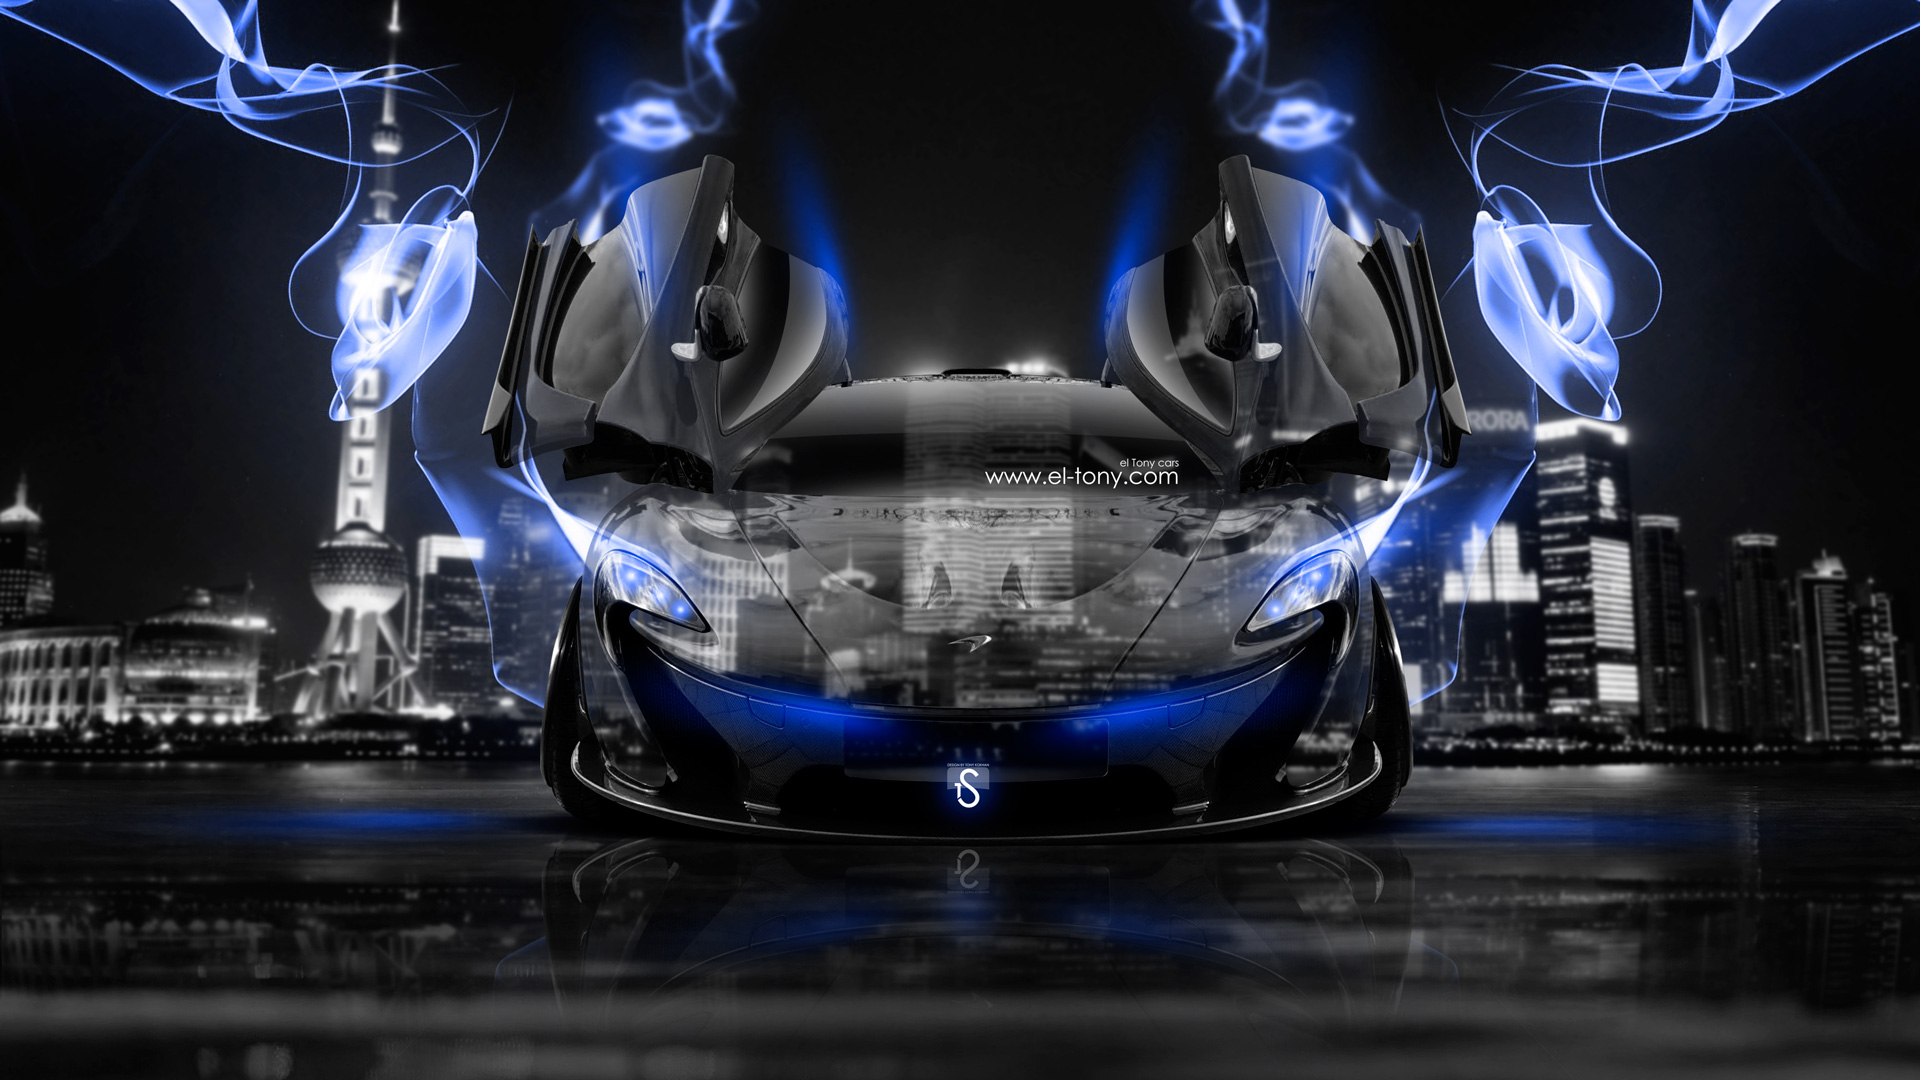 Charmant McLaren P1 Open Doors Front Crystal City Blue